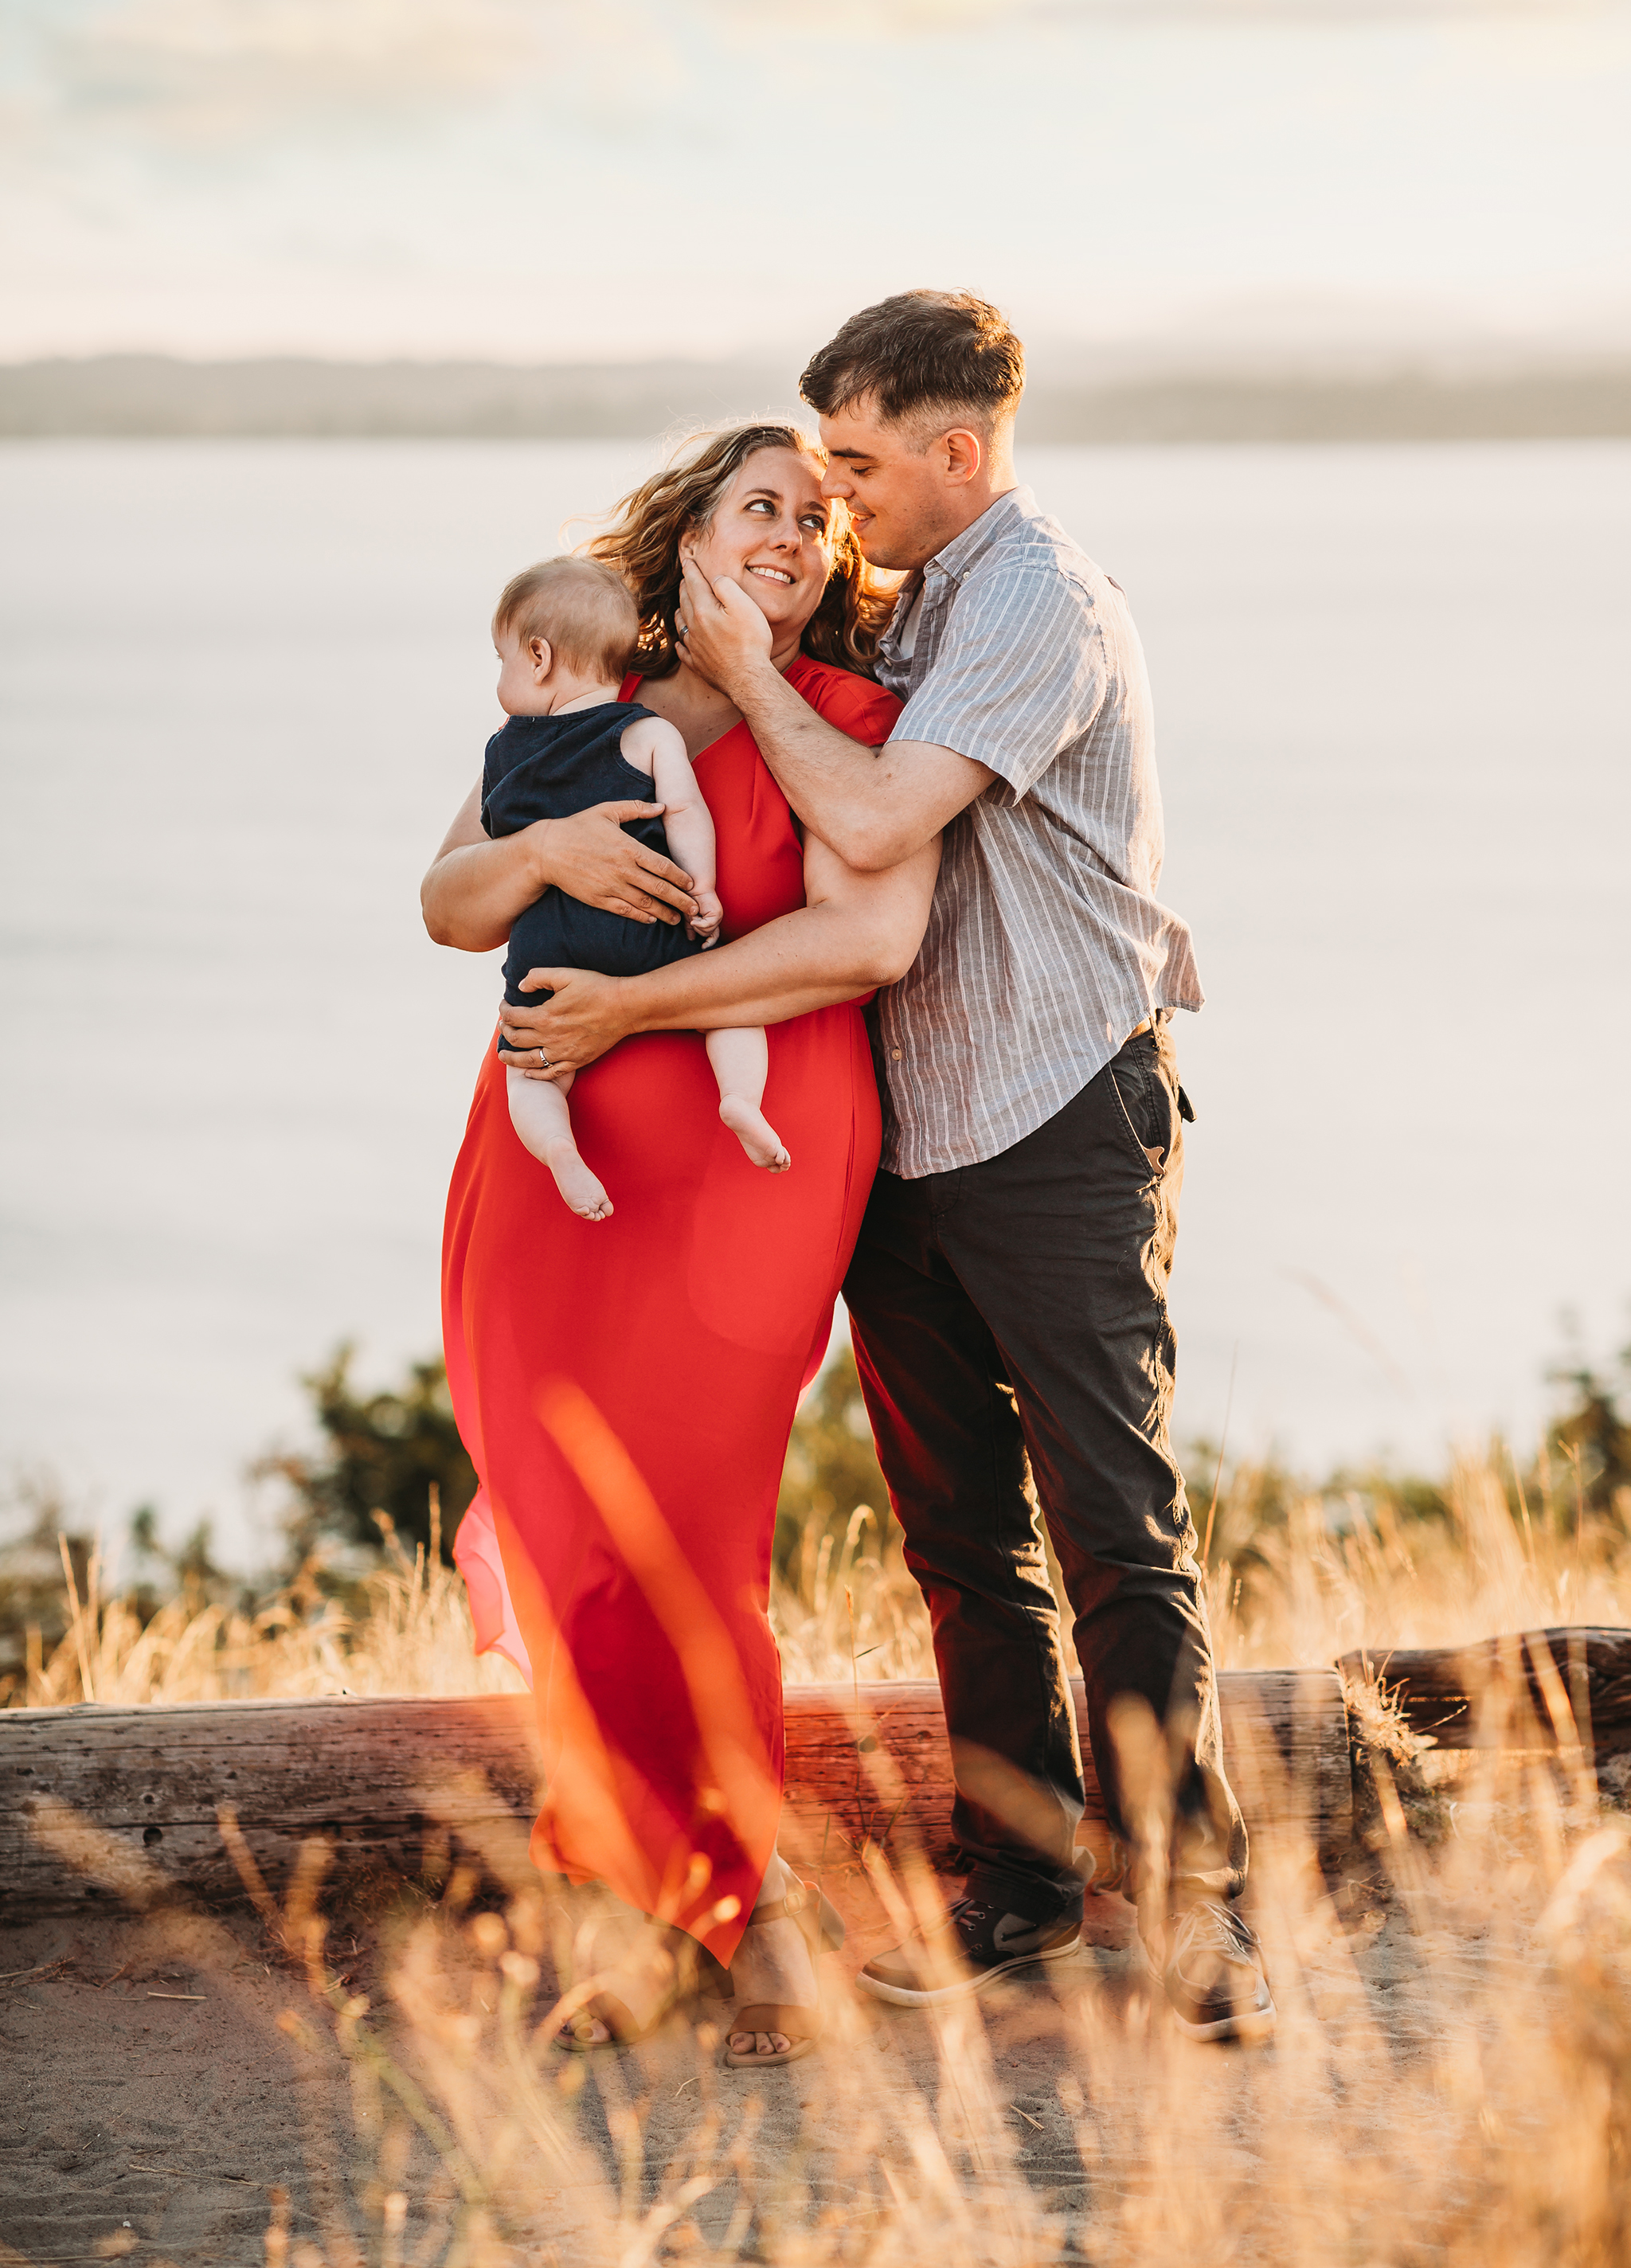 Step one to choosing what to wear for Boston family photos: start with mom. Photo of beautiful mom in red dress holding baby while husband touches the side of her face lovingly.